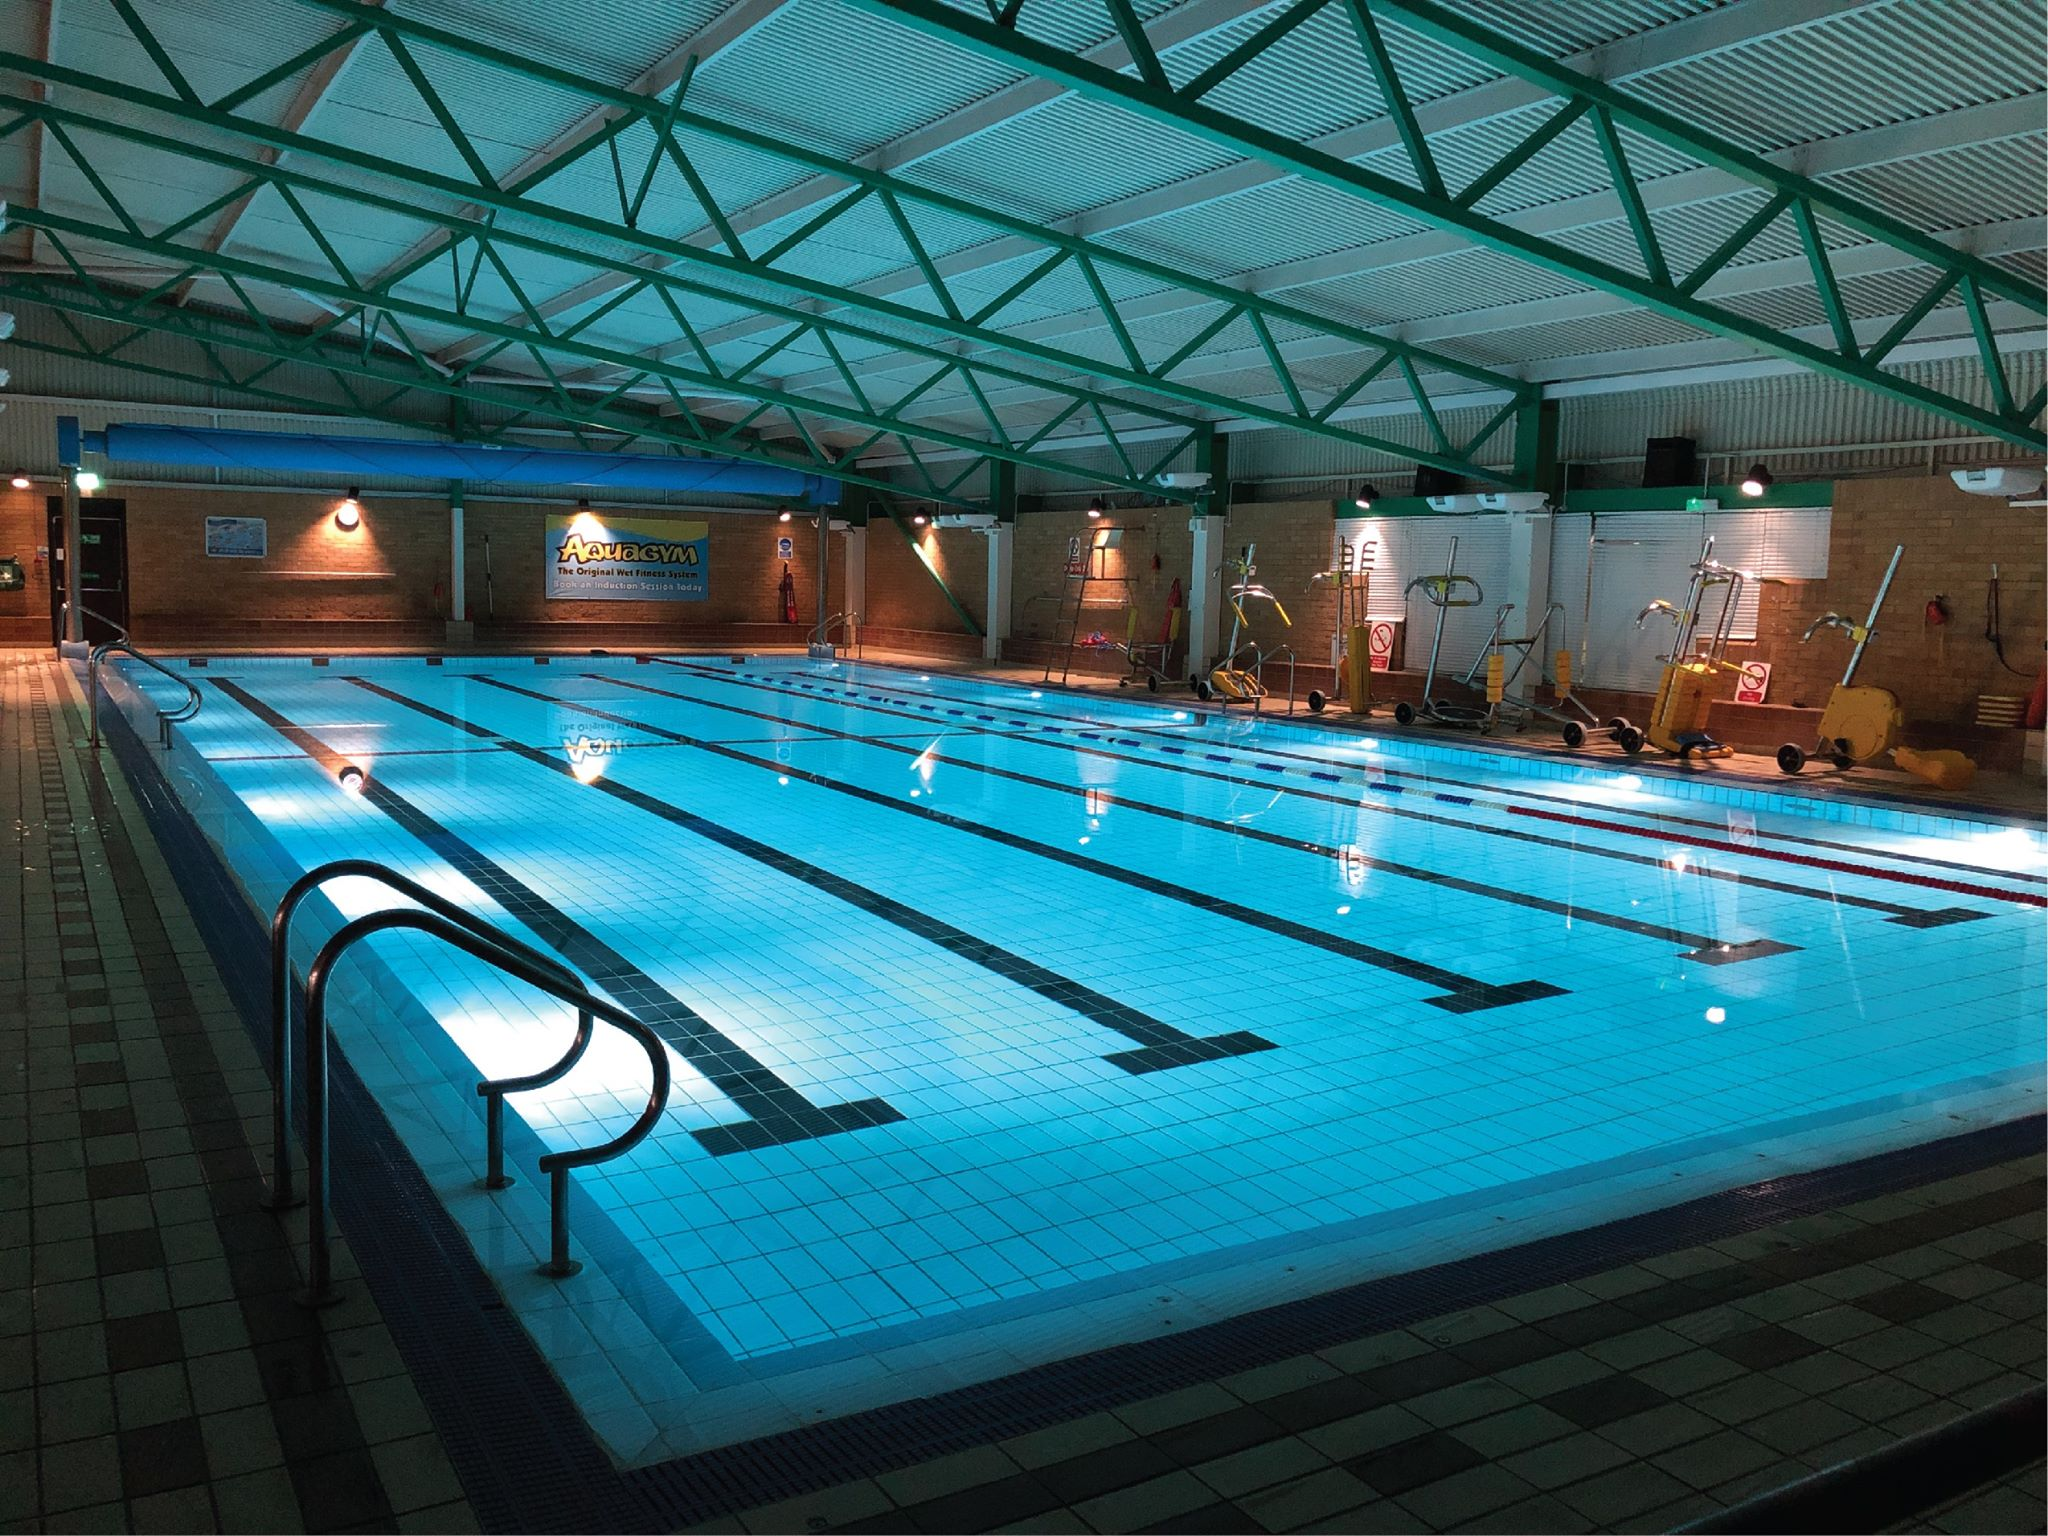 Cowdenbeath Leisure Centre swimming pool